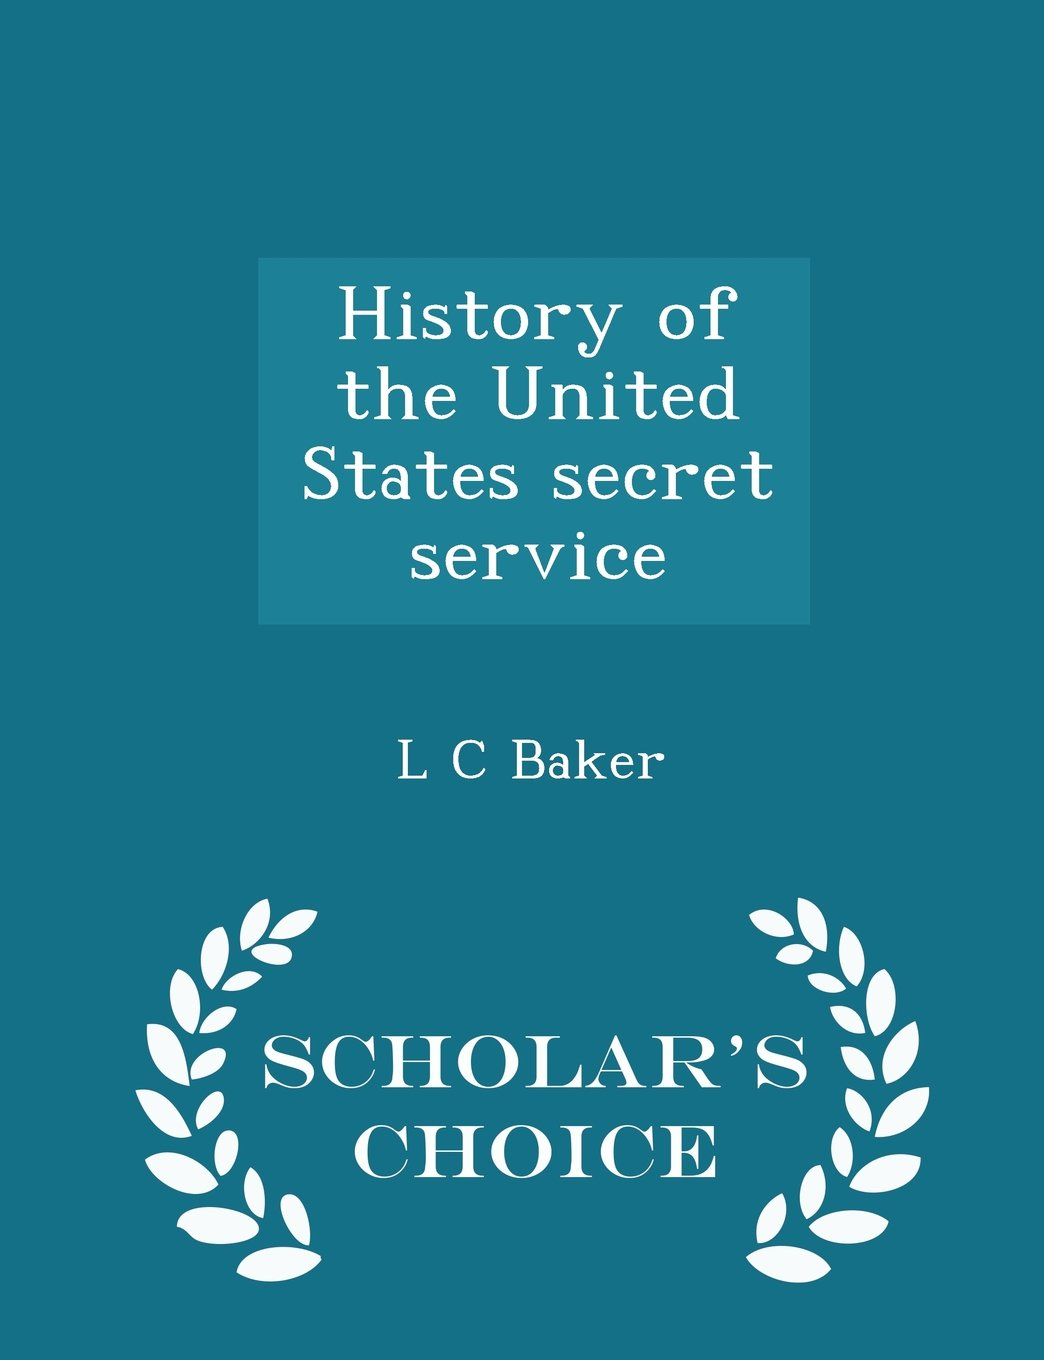 Download History of the United States secret service - Scholar's Choice Edition PDF